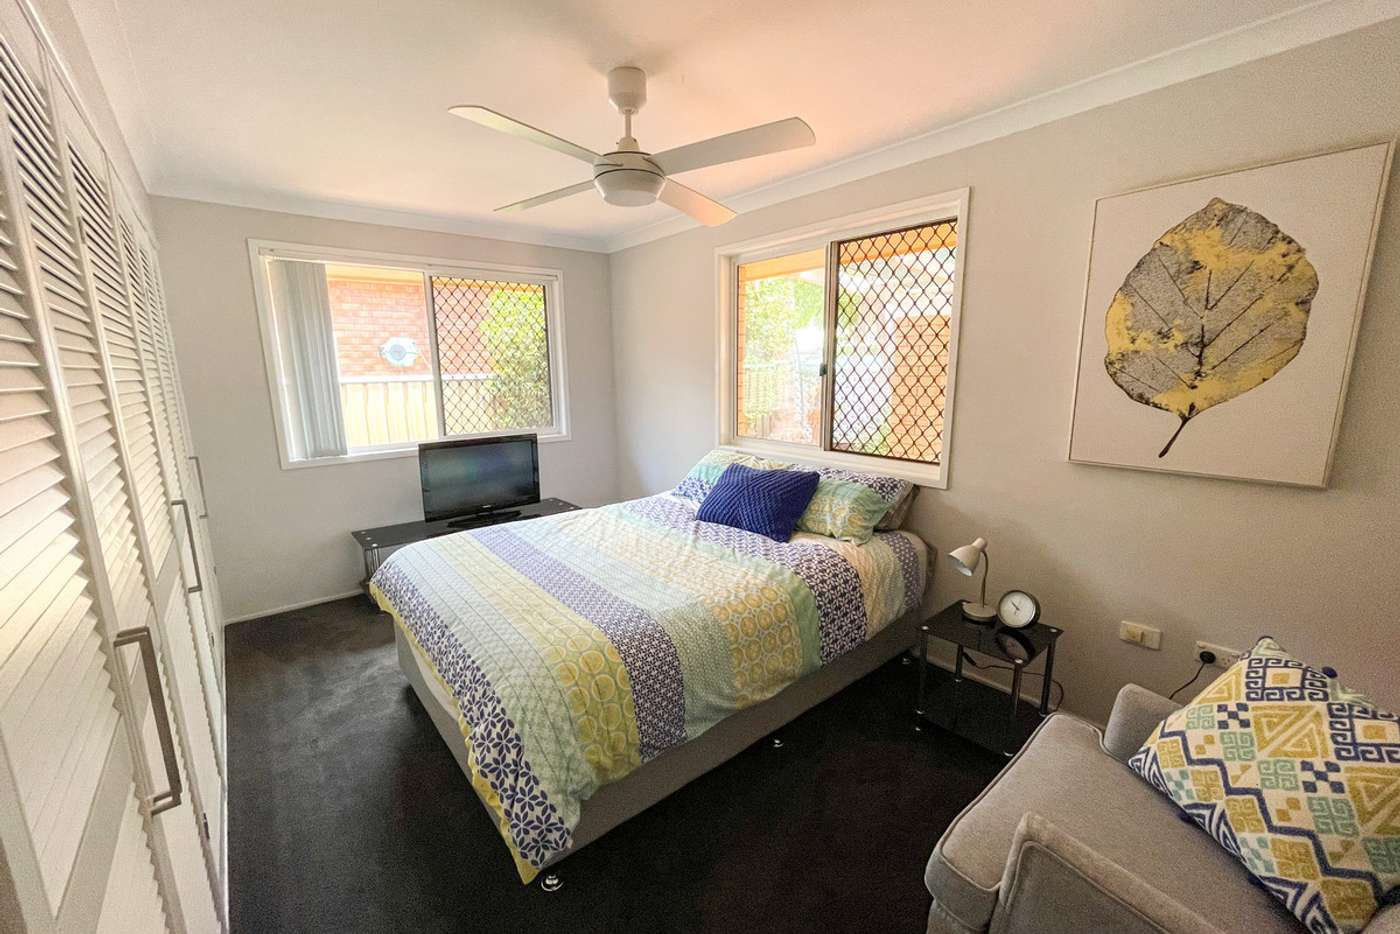 Seventh view of Homely house listing, 14 Clewley Crescent, Rangeville QLD 4350